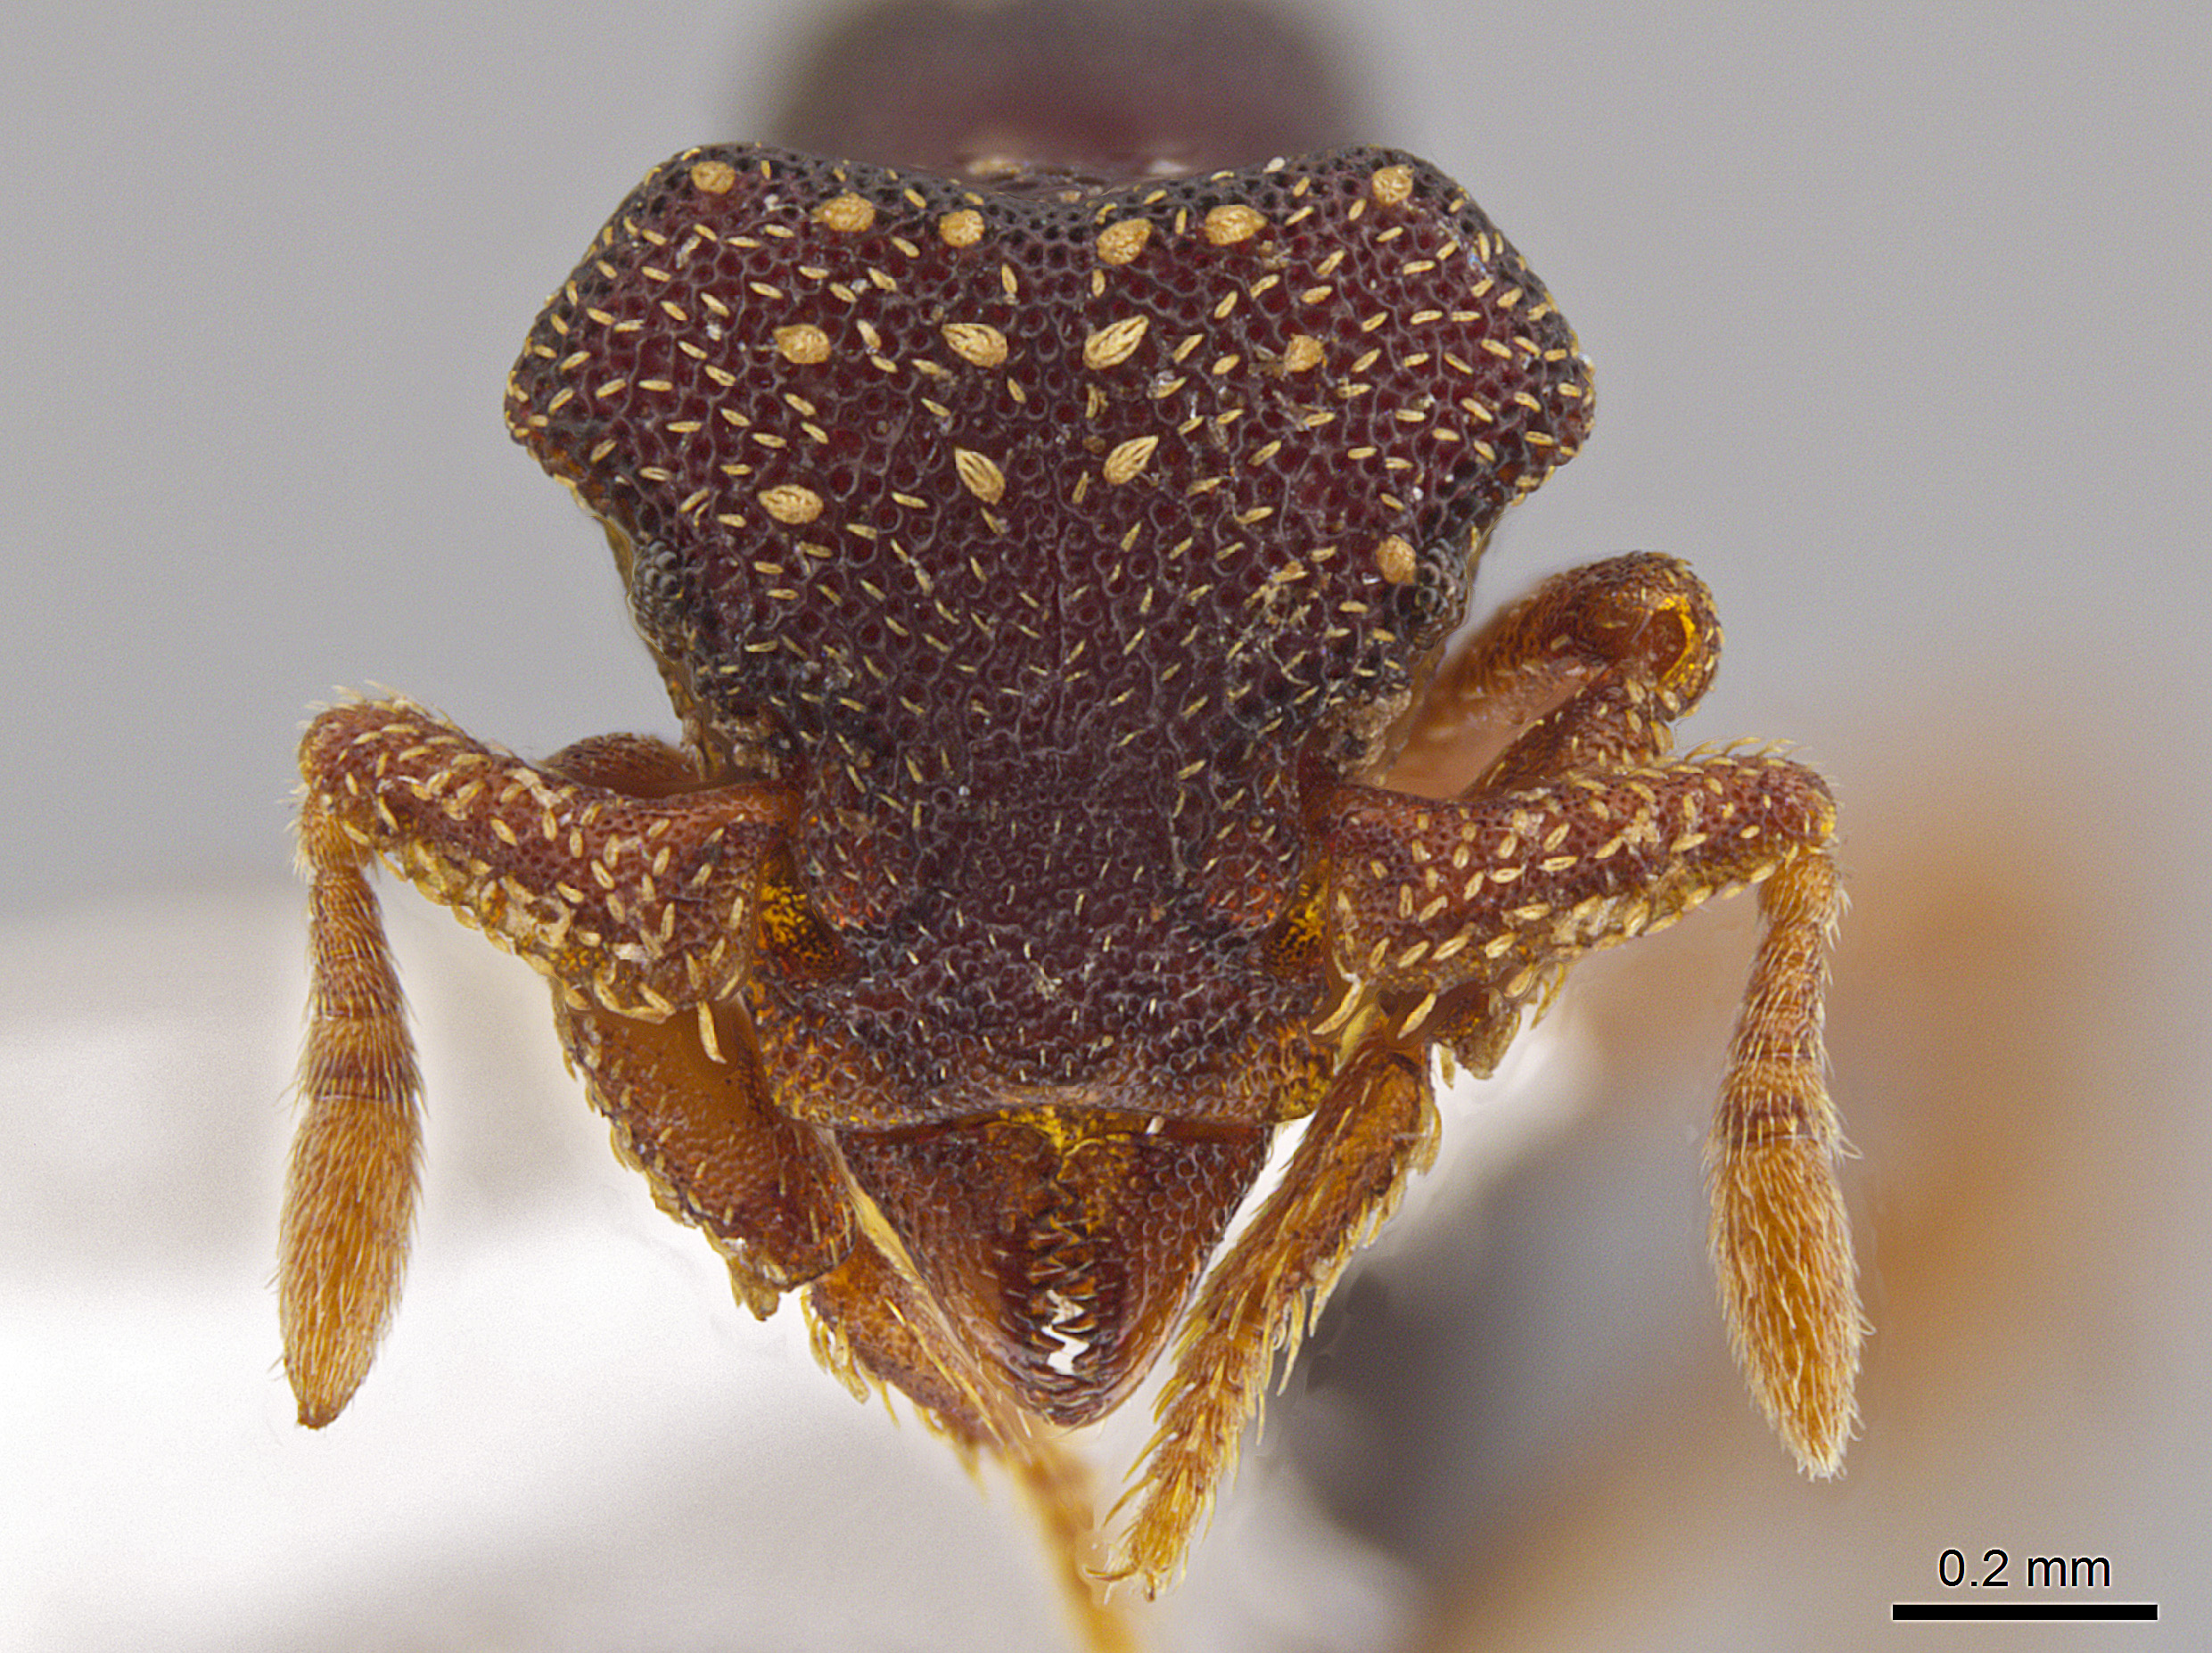 This photo shows the magnified monster-like face of the ant Eurhopalothrix zipacna, named after Zipacna, a vicious, crocodile-like demon of Mayan mythology. Found in the mountains of Guatemala and Honduras, it is among 33 new ants species discovered in Central America and the Caribbean by Jack Longino, a biologist at the University of Utah.